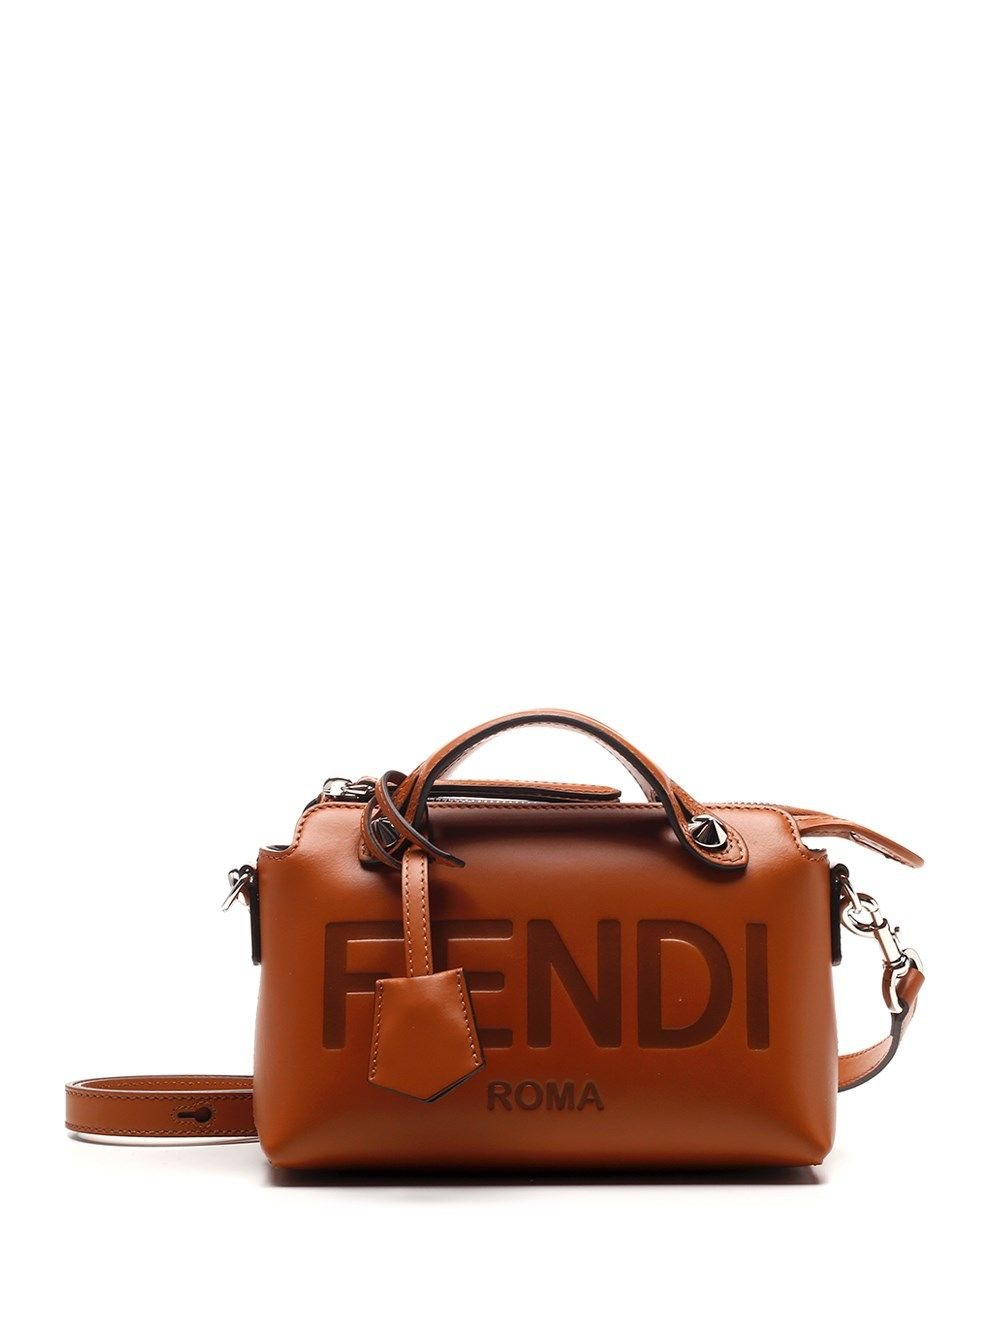 Fendi FENDI WOMEN'S BROWN OTHER MATERIALS SHOULDER BAG